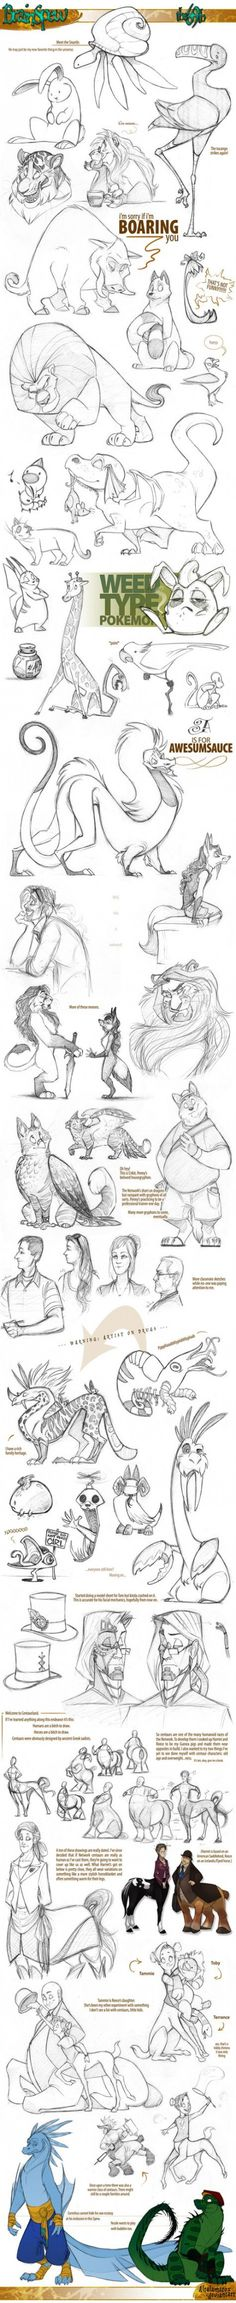 New Drawing Animals Sketches Character Design 57 Ideas Animal Sketches, Animal Drawings, Drawing Sketches, Drawing Animals, Drawing Style, Sketching, Drawing Ideas, Character Drawing, Character Concept